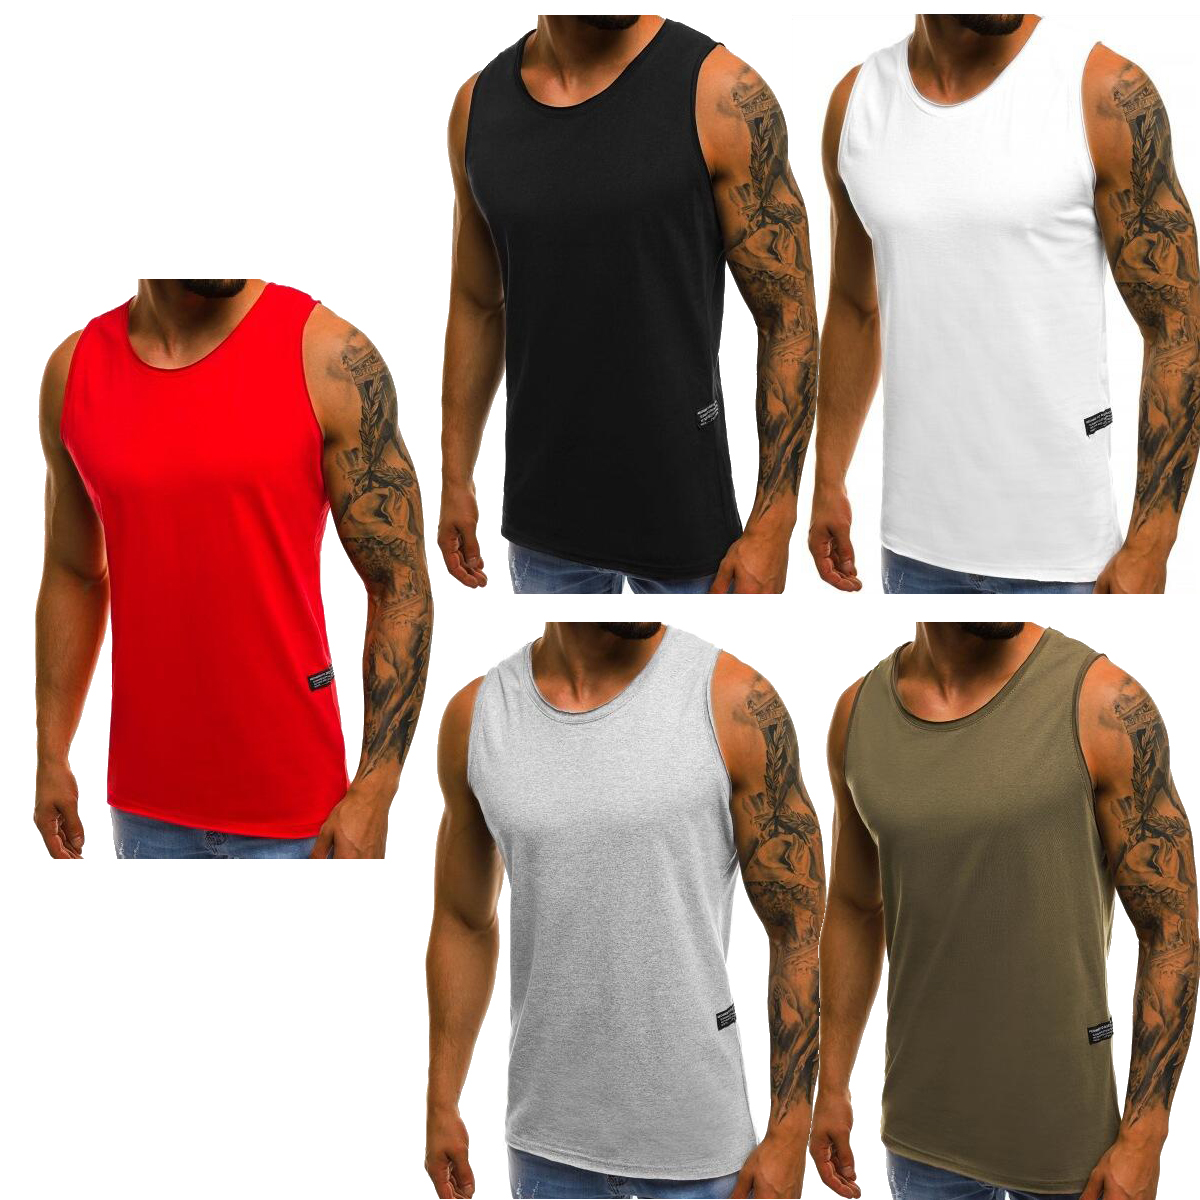 065333fefc2a8 Blank Sleeveless Tank Top Singlet M-3XL Small Big Men s Cotton ...